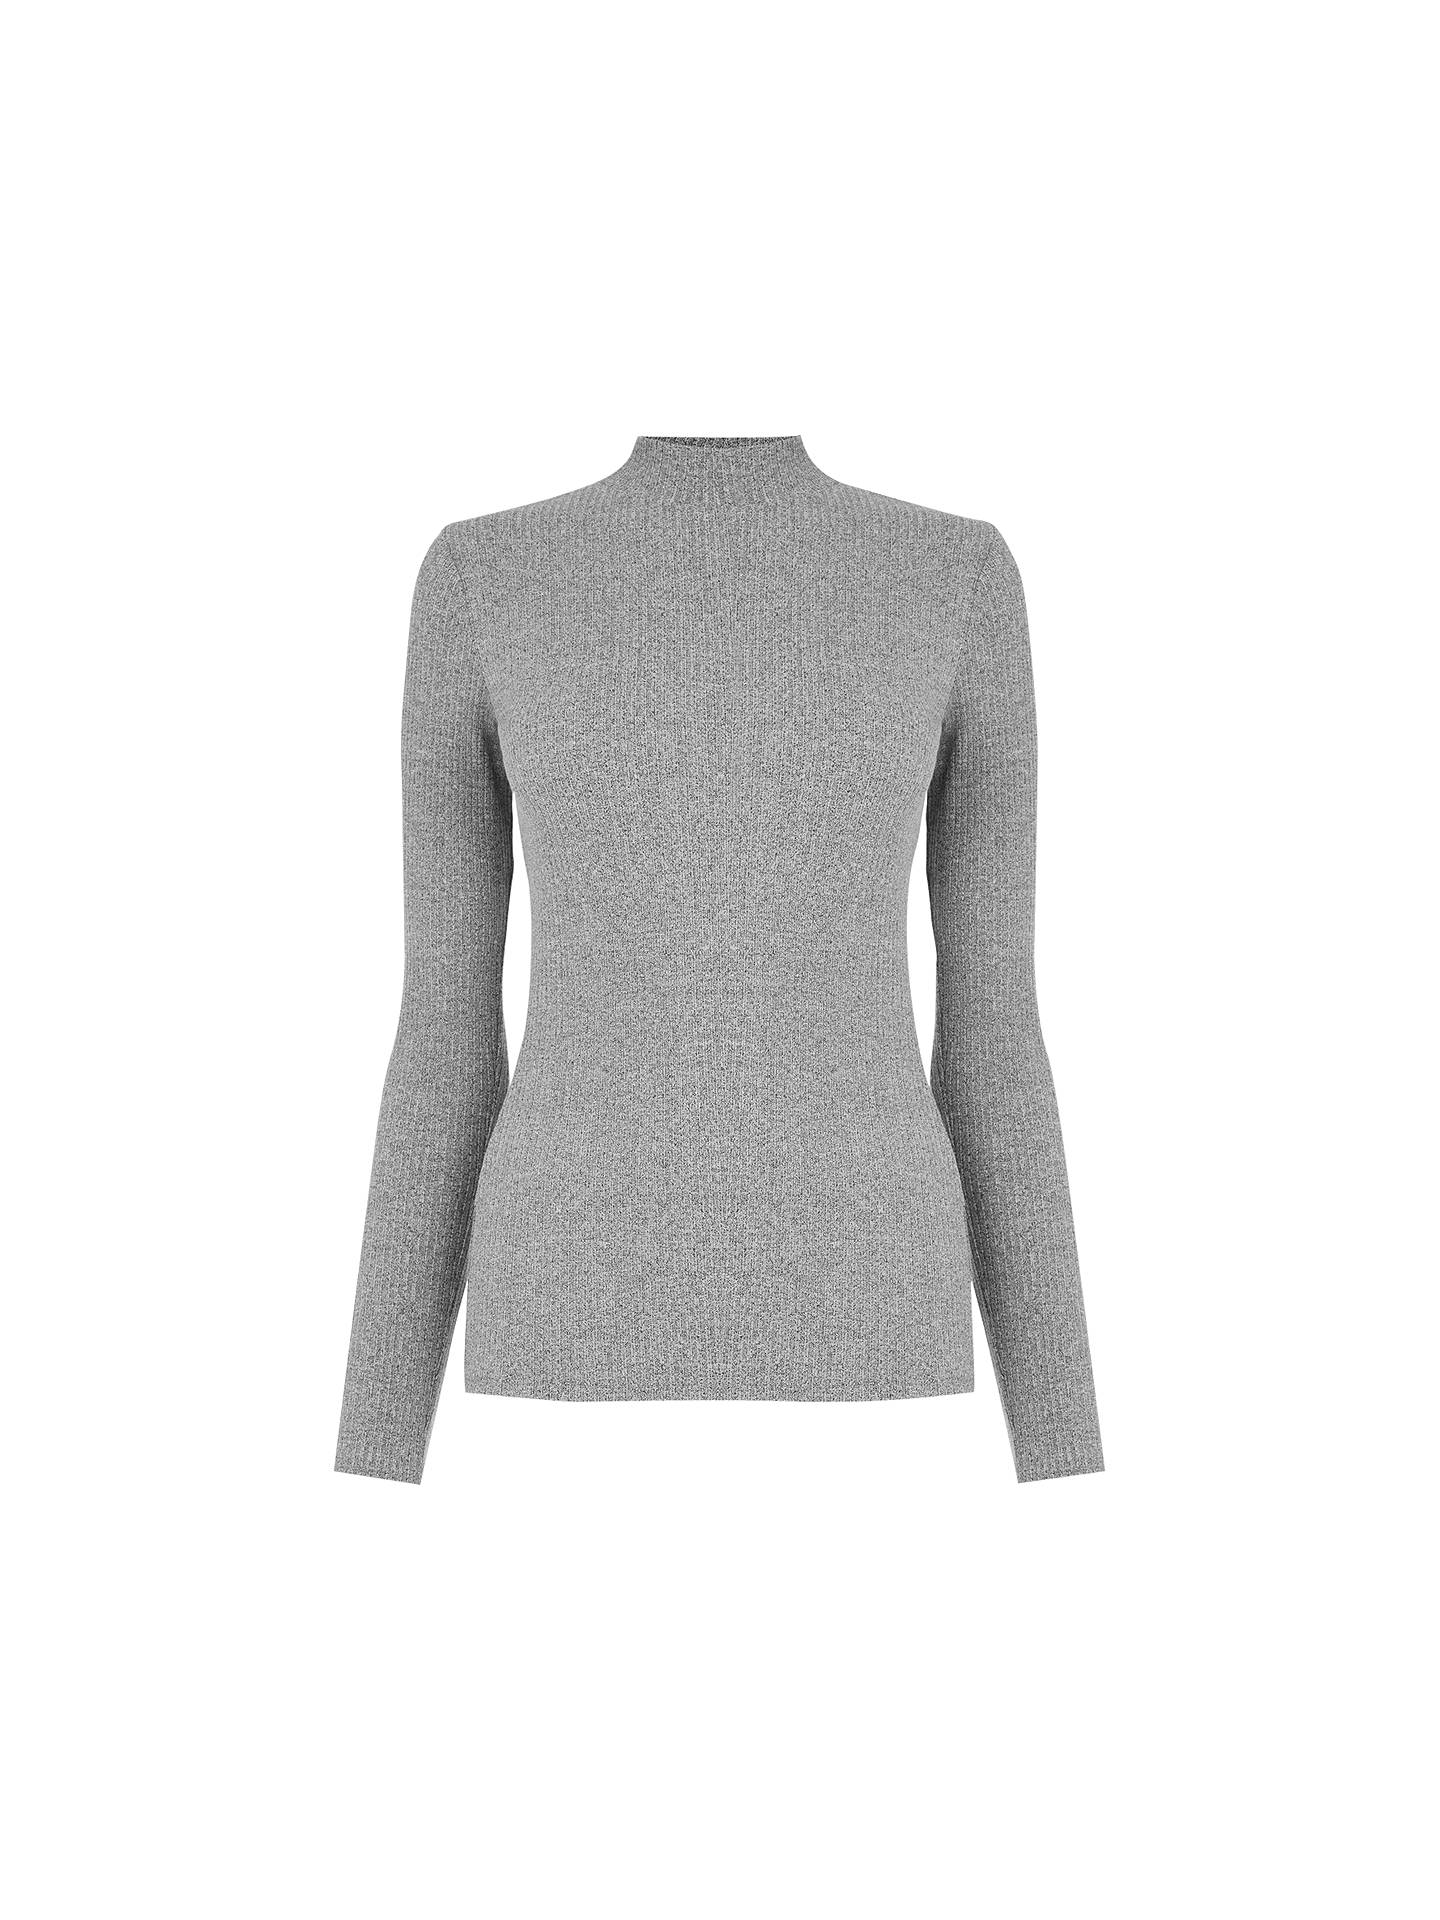 Oasis Skinny Rib Polo Neck Jumper at John Lewis & Partners